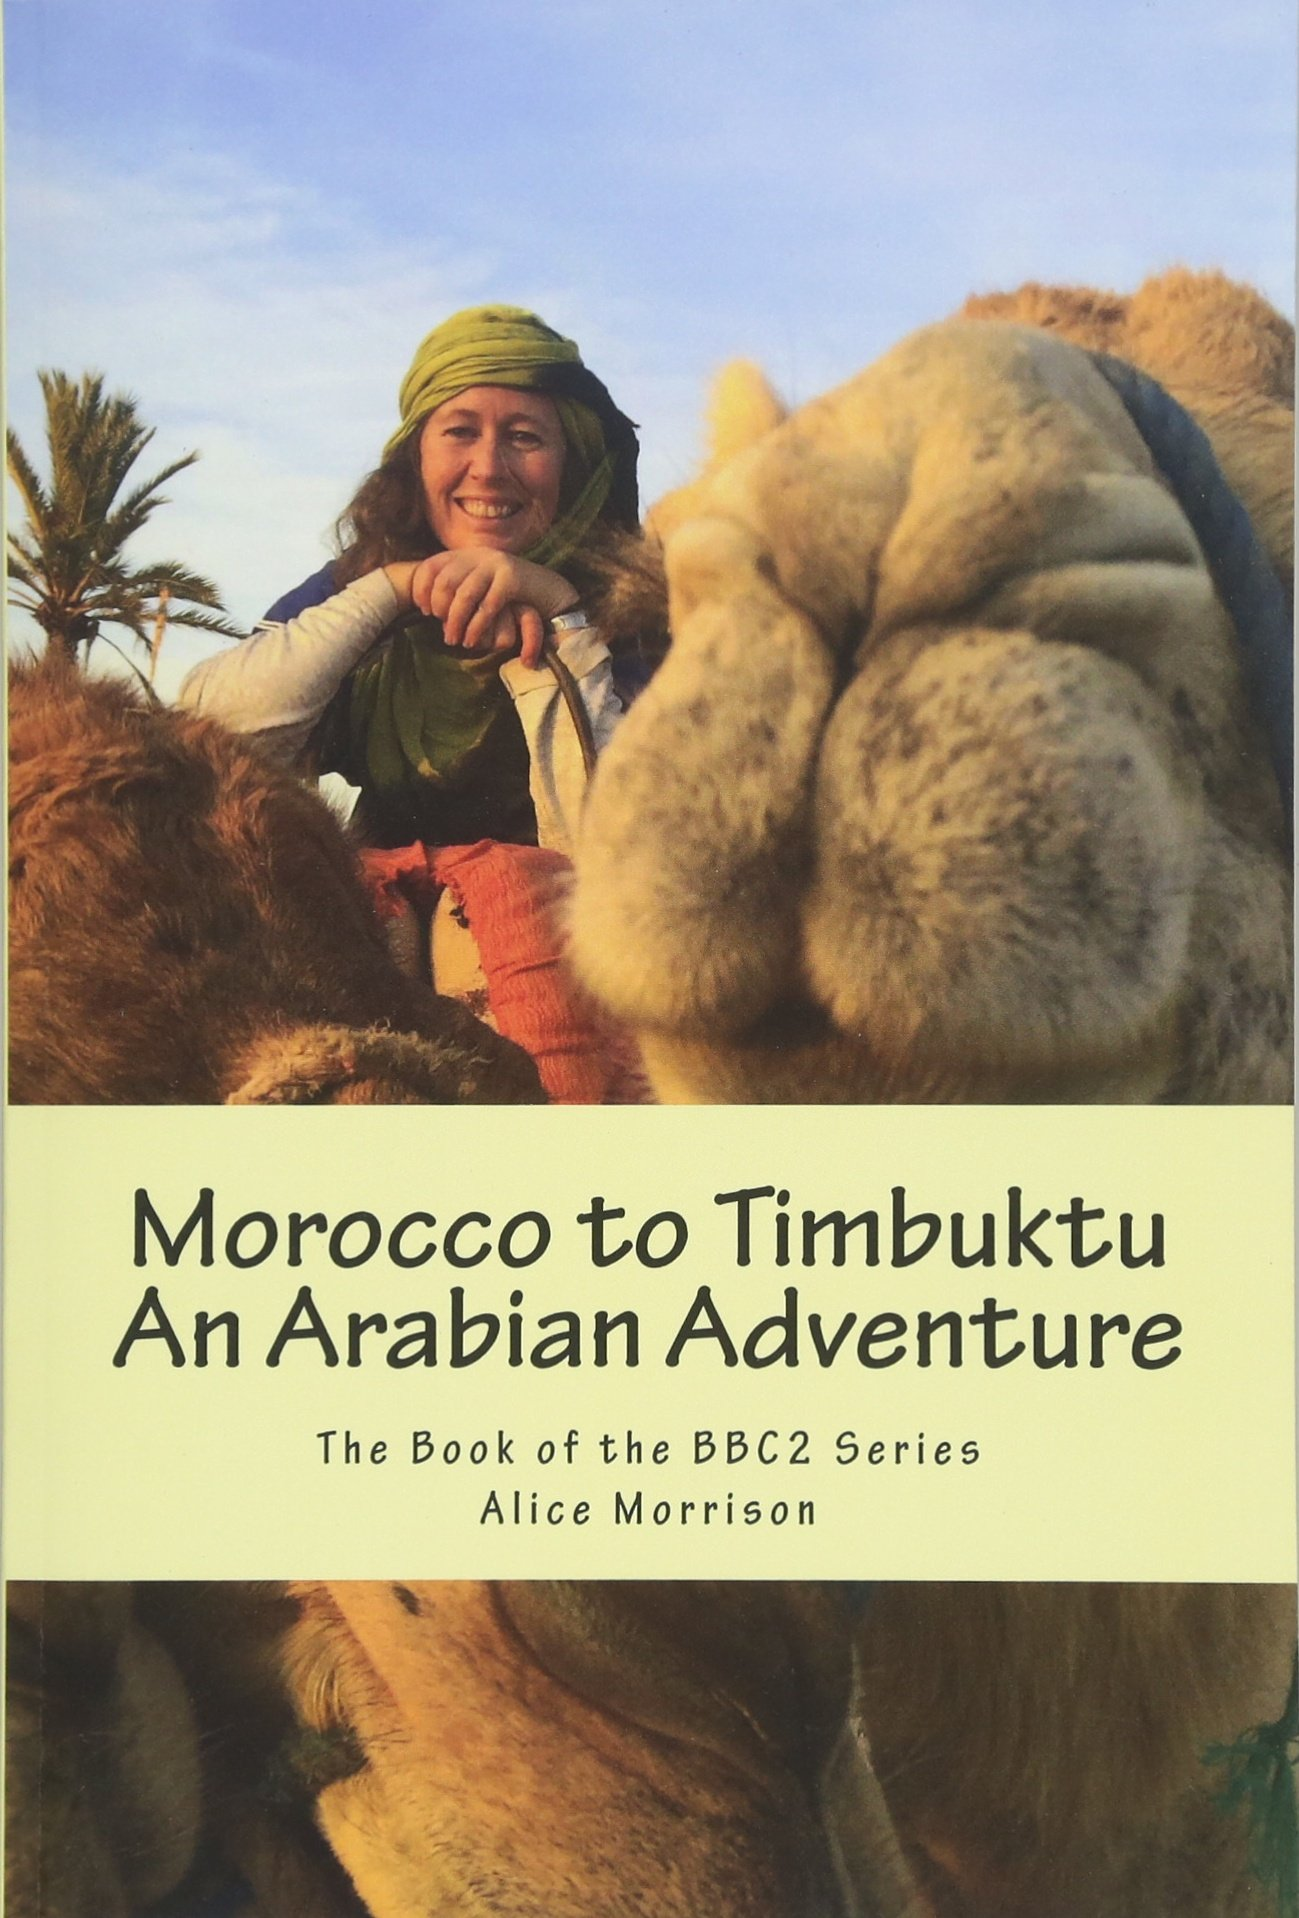 Morocco to Timbuktu: An Arabian Adventure: The Book of the BBC2 Series